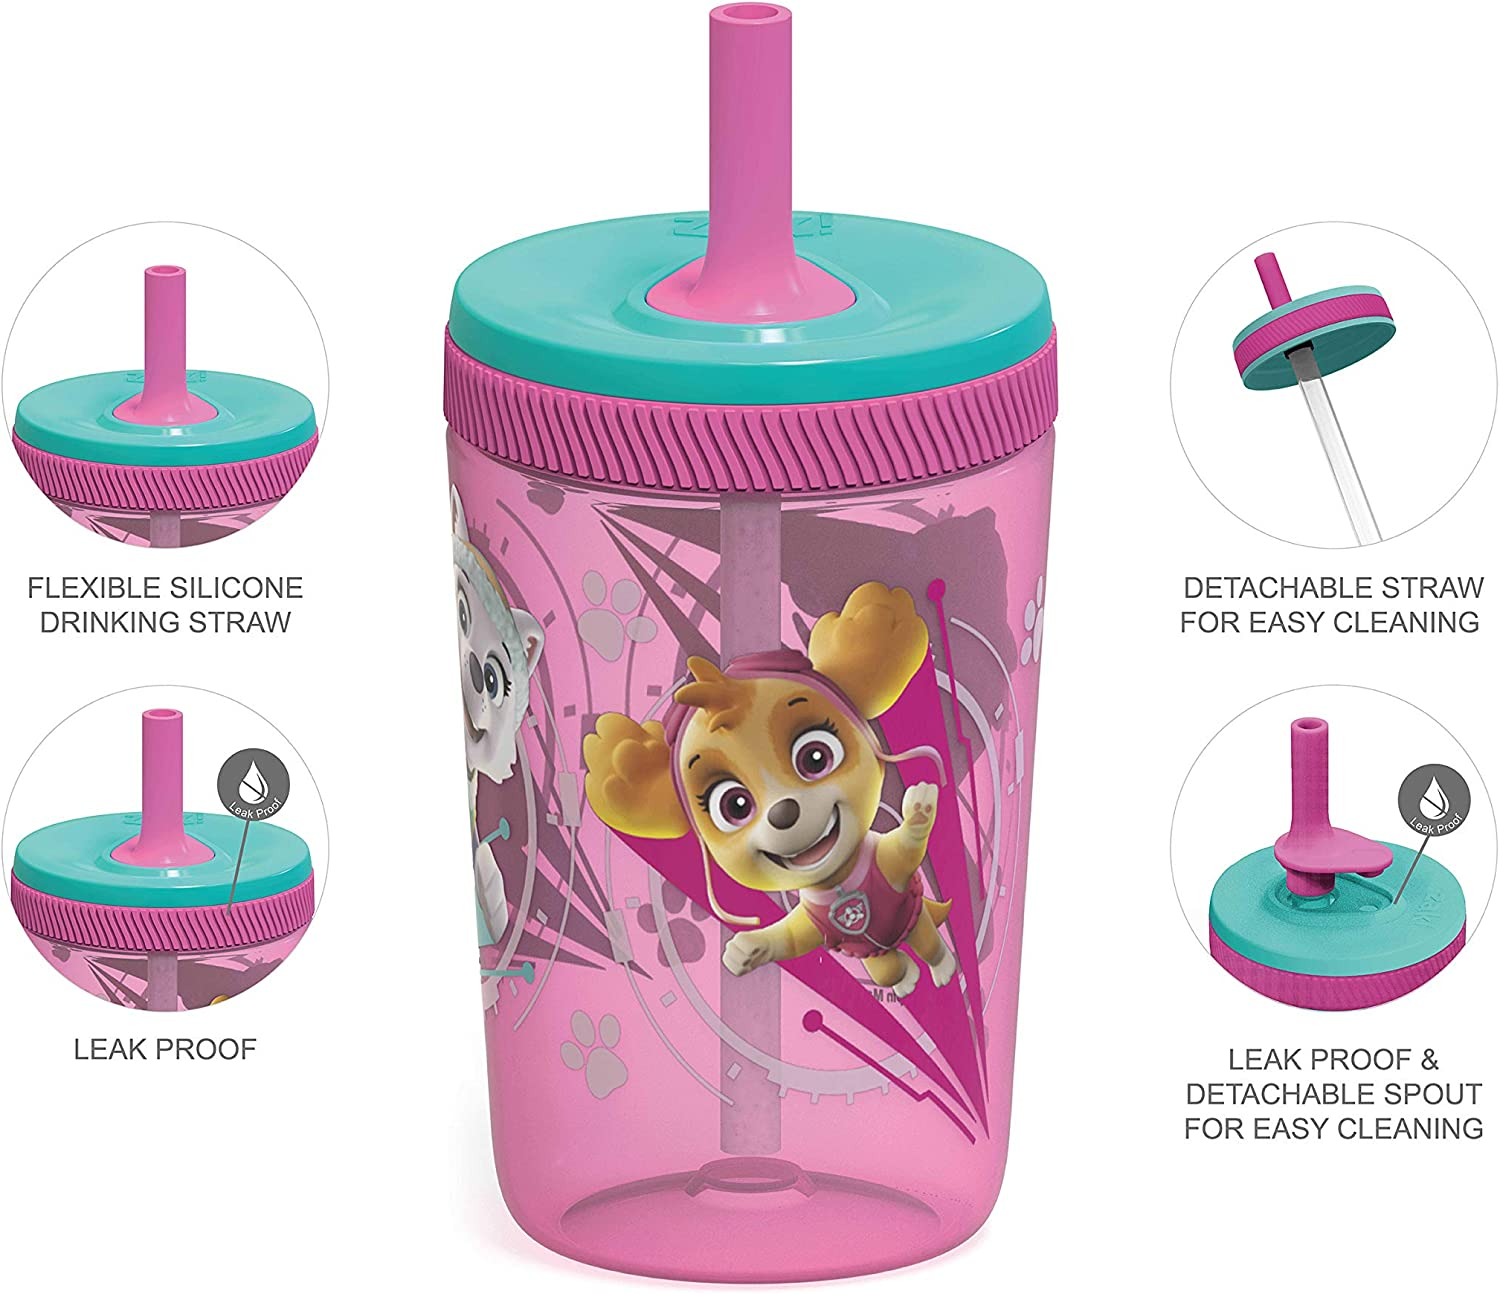 Leak-Proof Screw-On Lid with Straw Made of Durable Plastic and Silicone Perfect Bundle for Kids Zak Designs Disney Minnie Mouse Kelso Tumbler Set